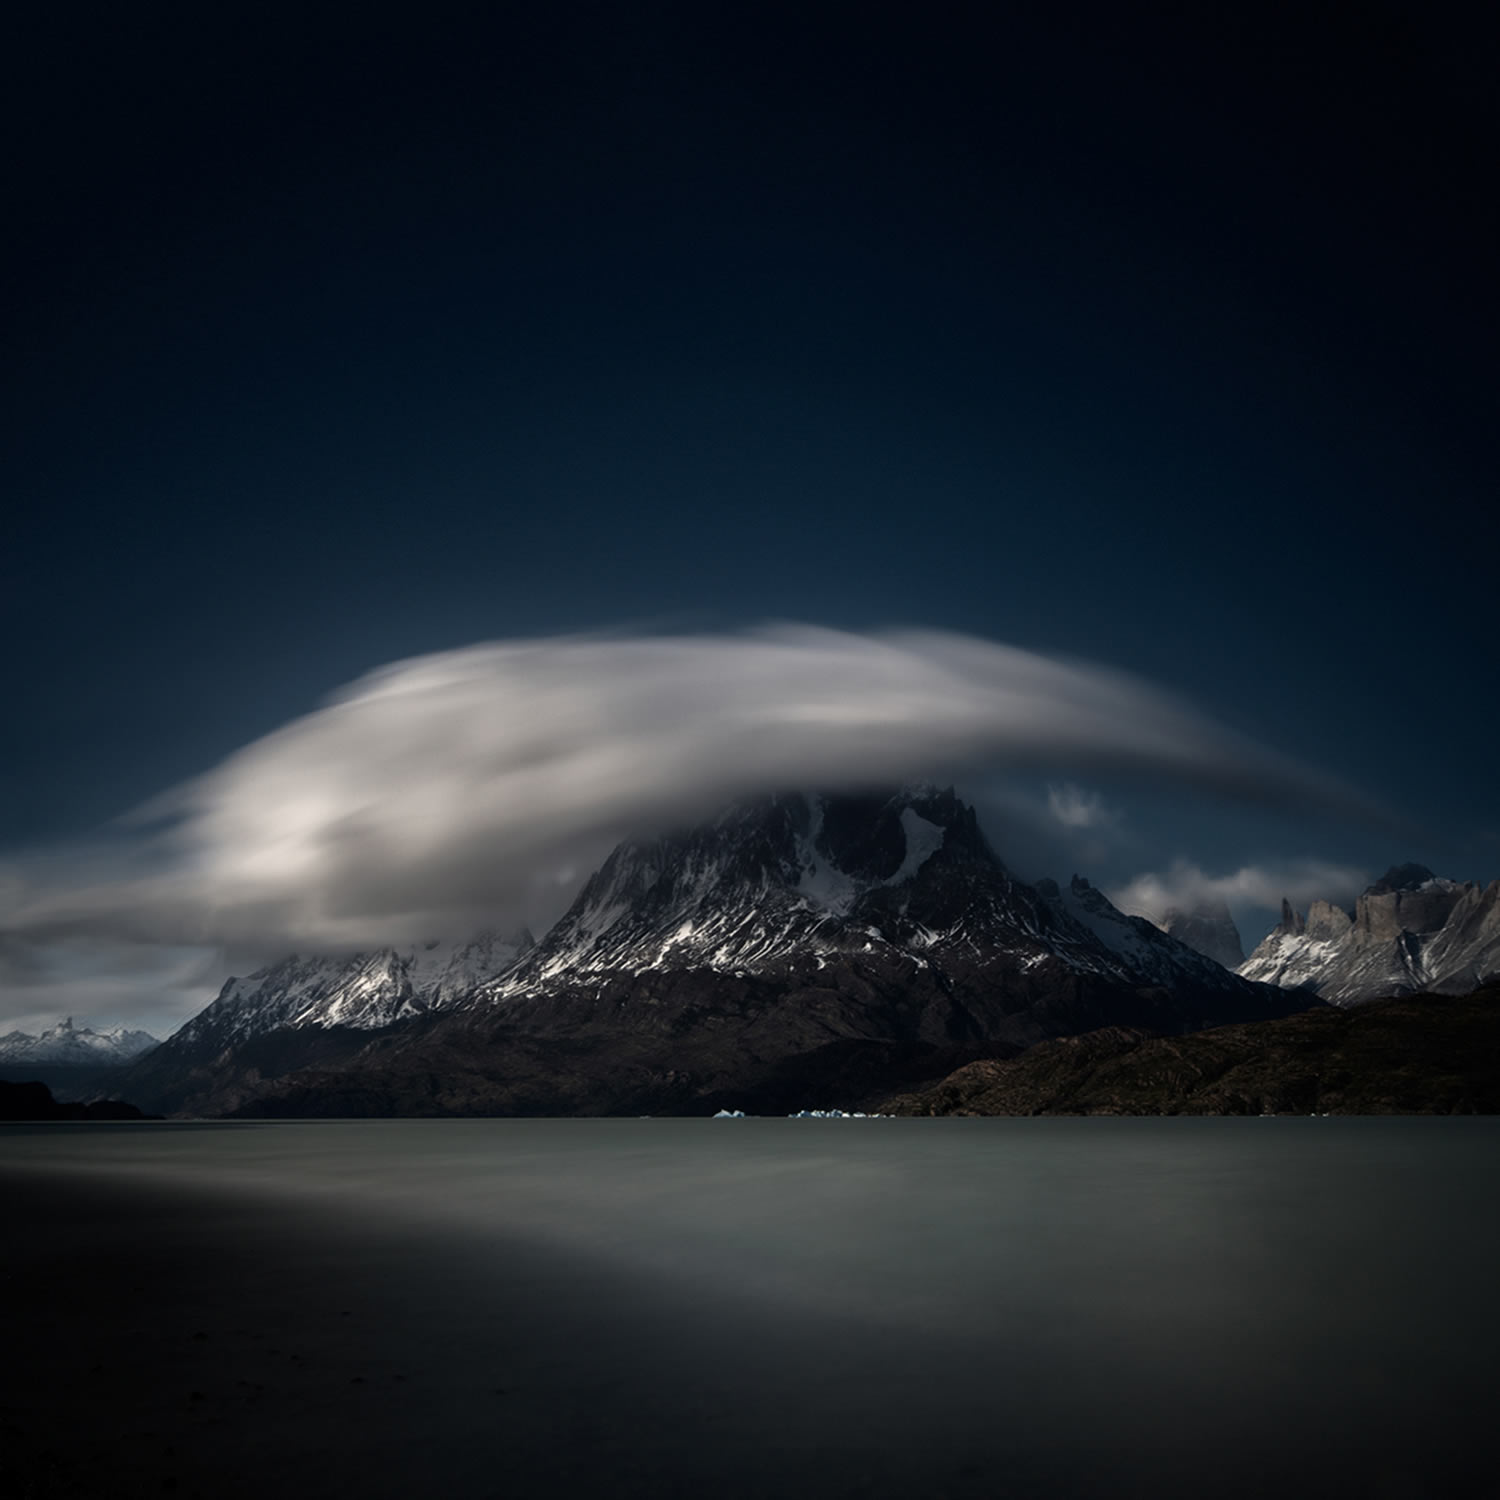 black mountains and clouds, patagonia